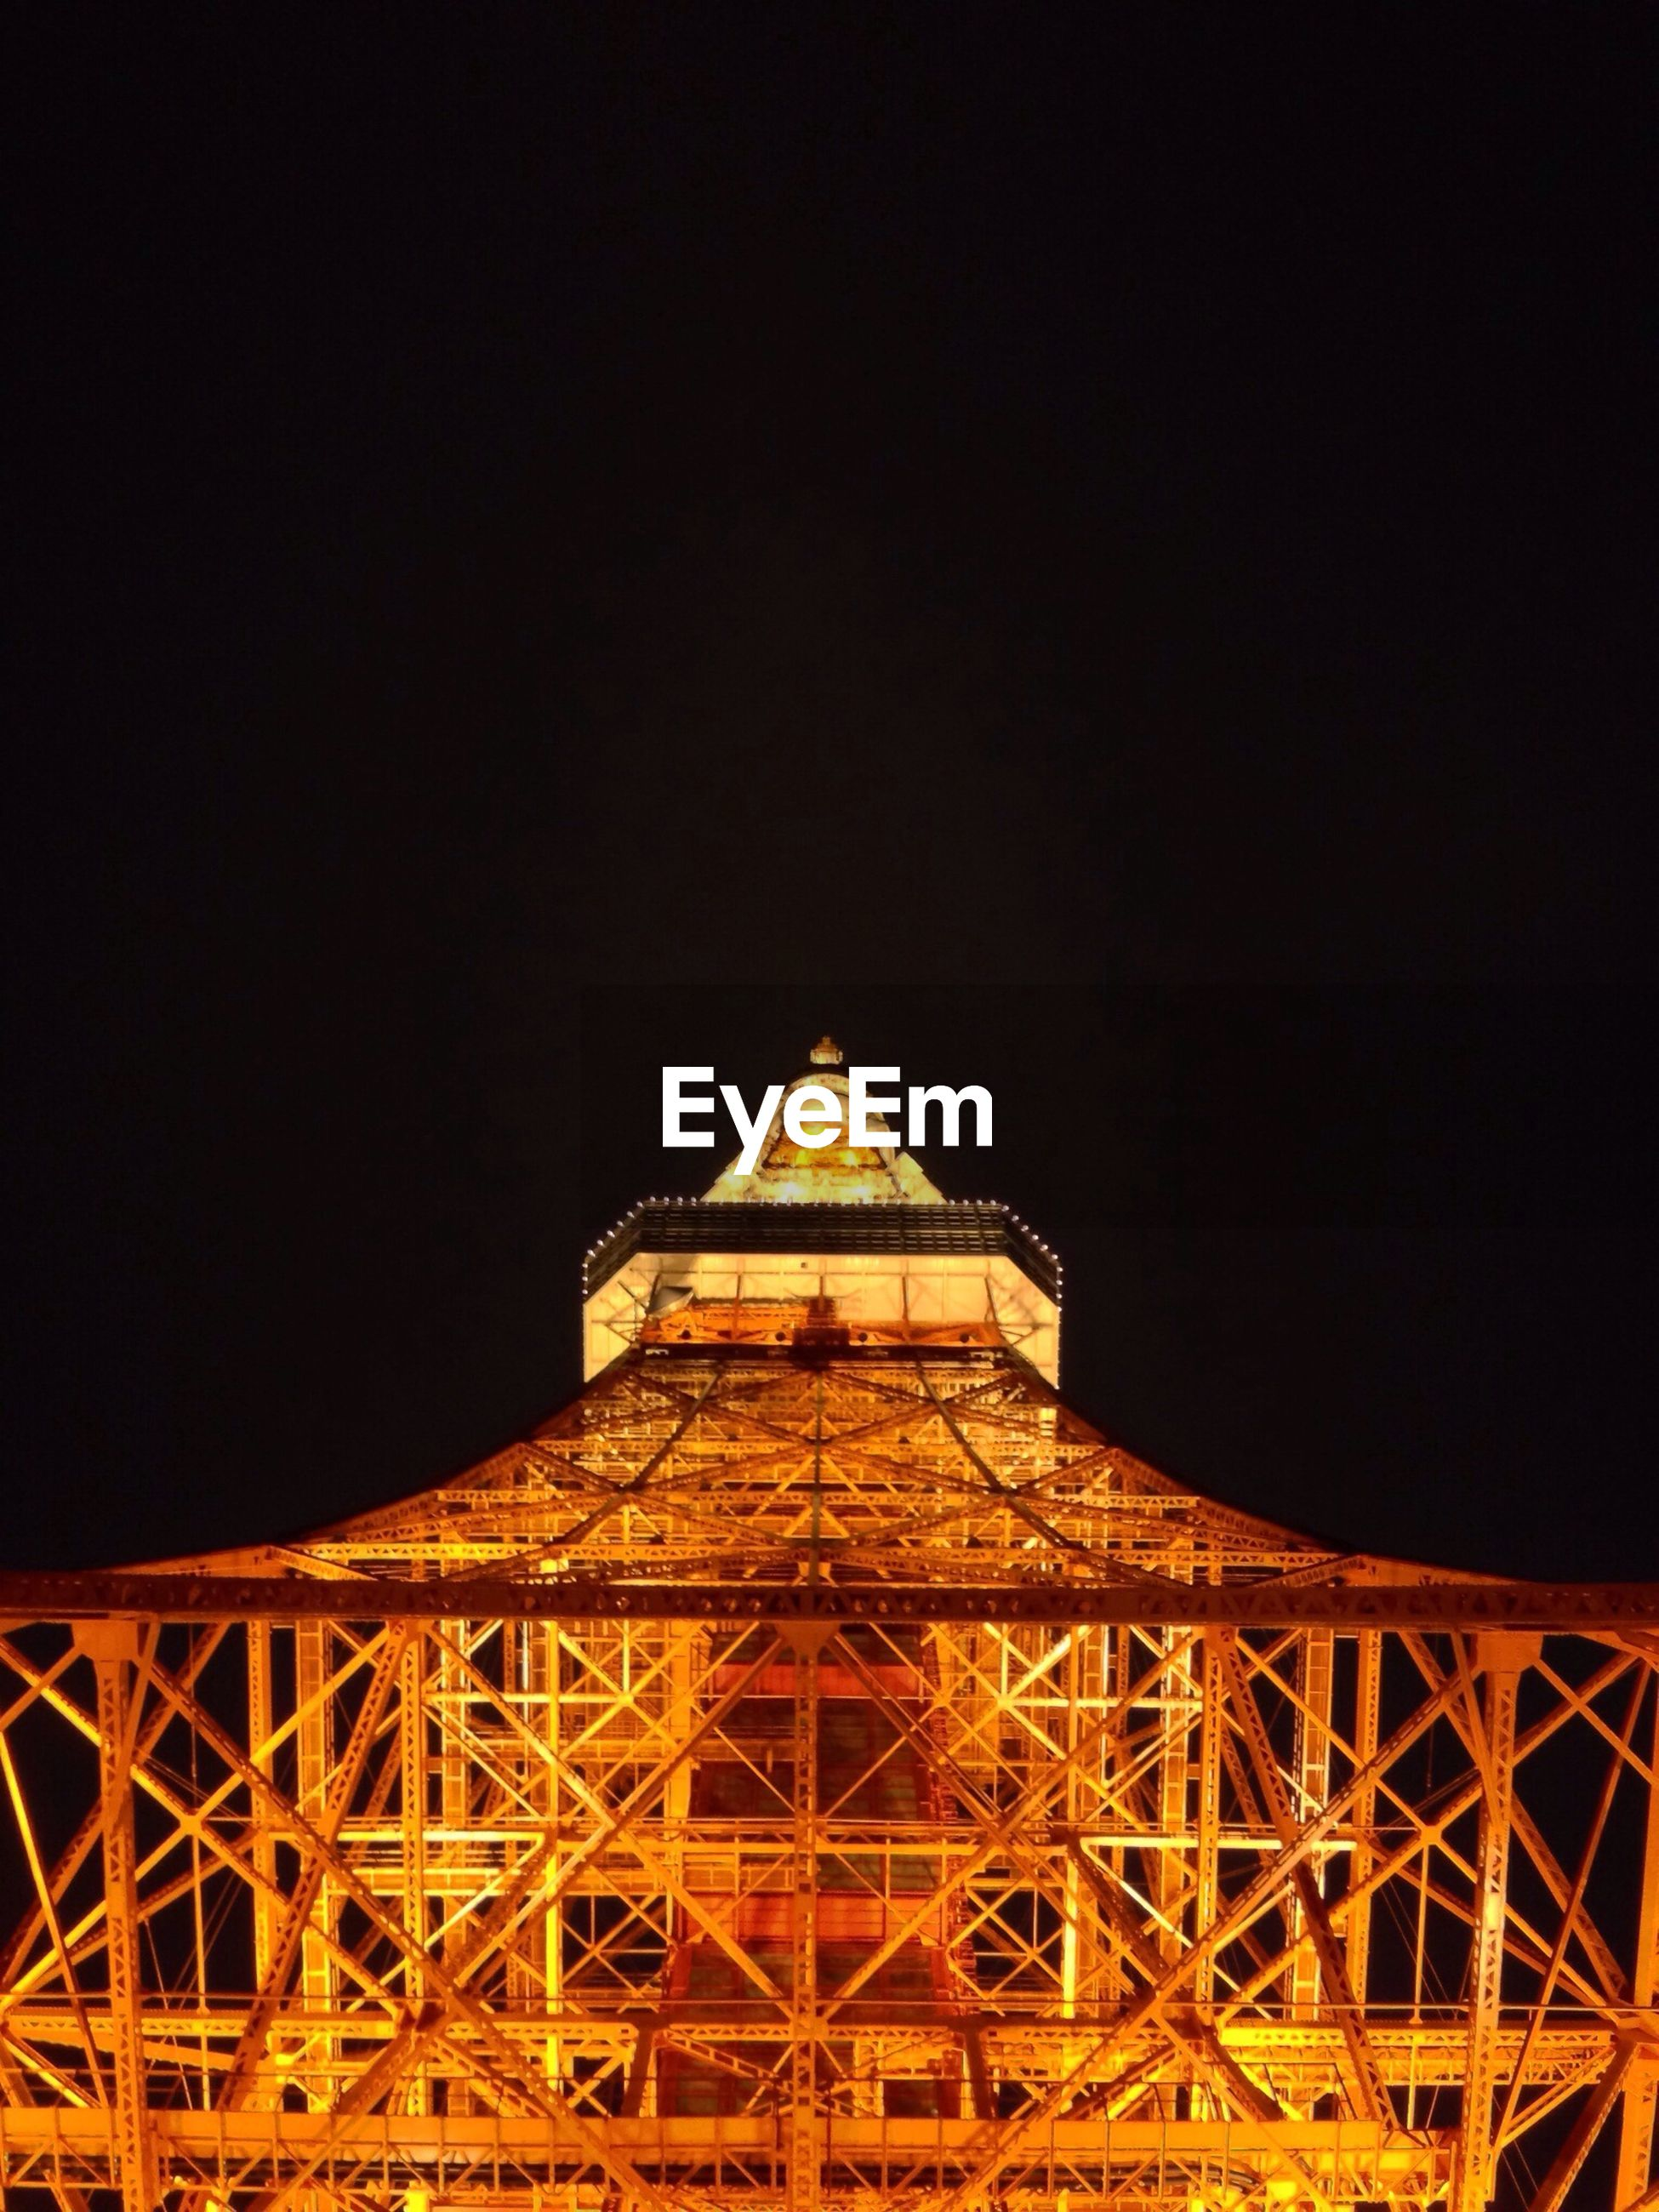 architecture, built structure, international landmark, famous place, clear sky, travel destinations, copy space, low angle view, tourism, night, eiffel tower, travel, capital cities, illuminated, tower, culture, history, metal, building exterior, engineering